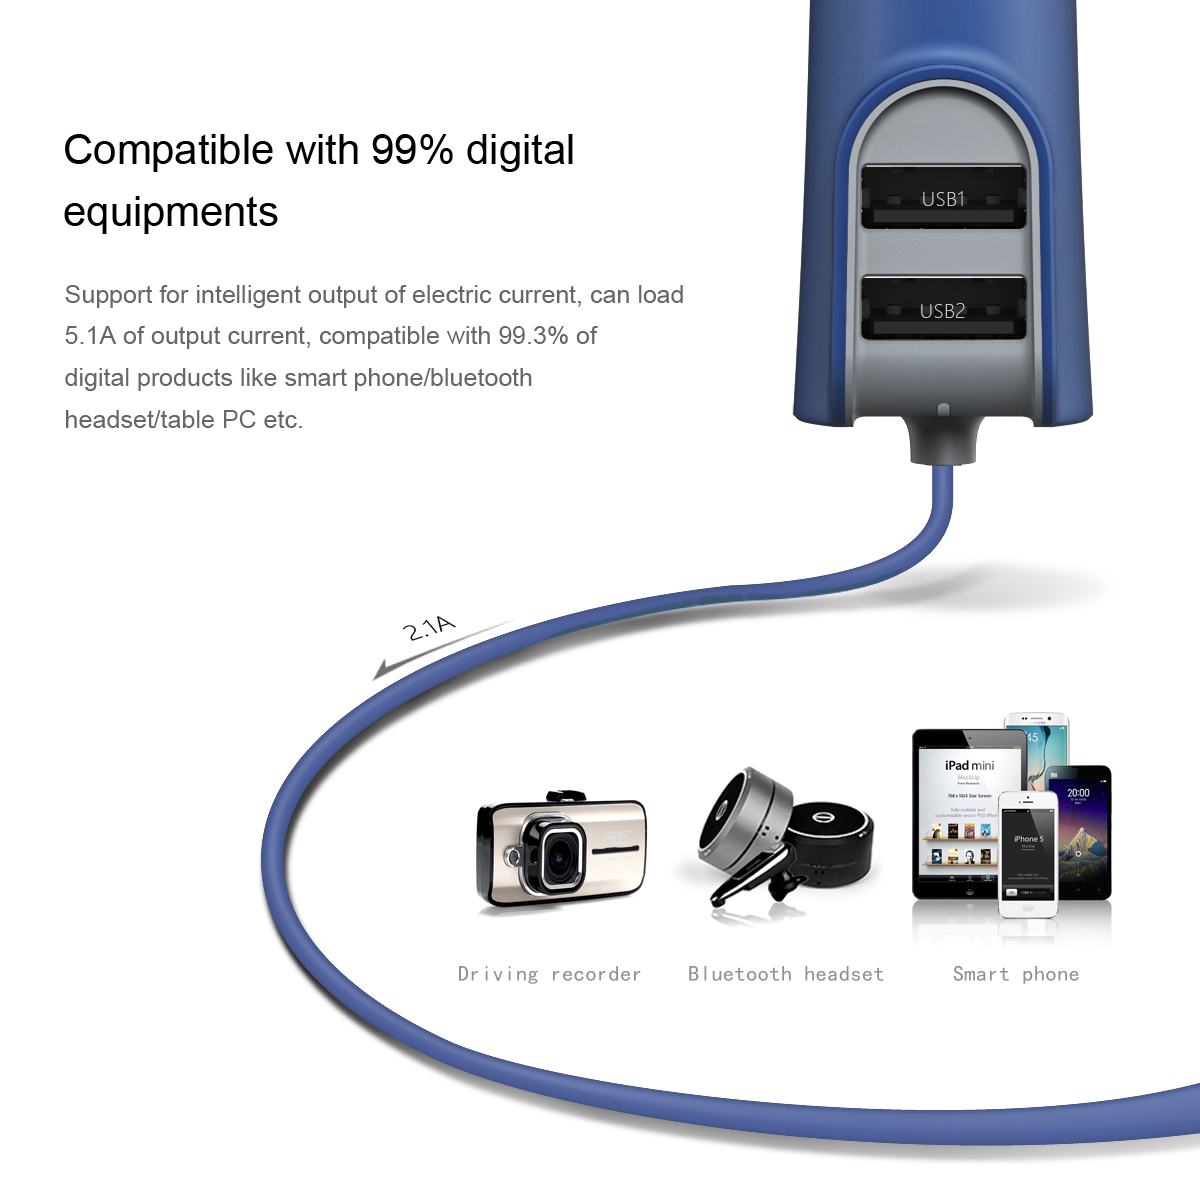 Baseus Car Charger For Iphone With 2 Usb Ports Baseus